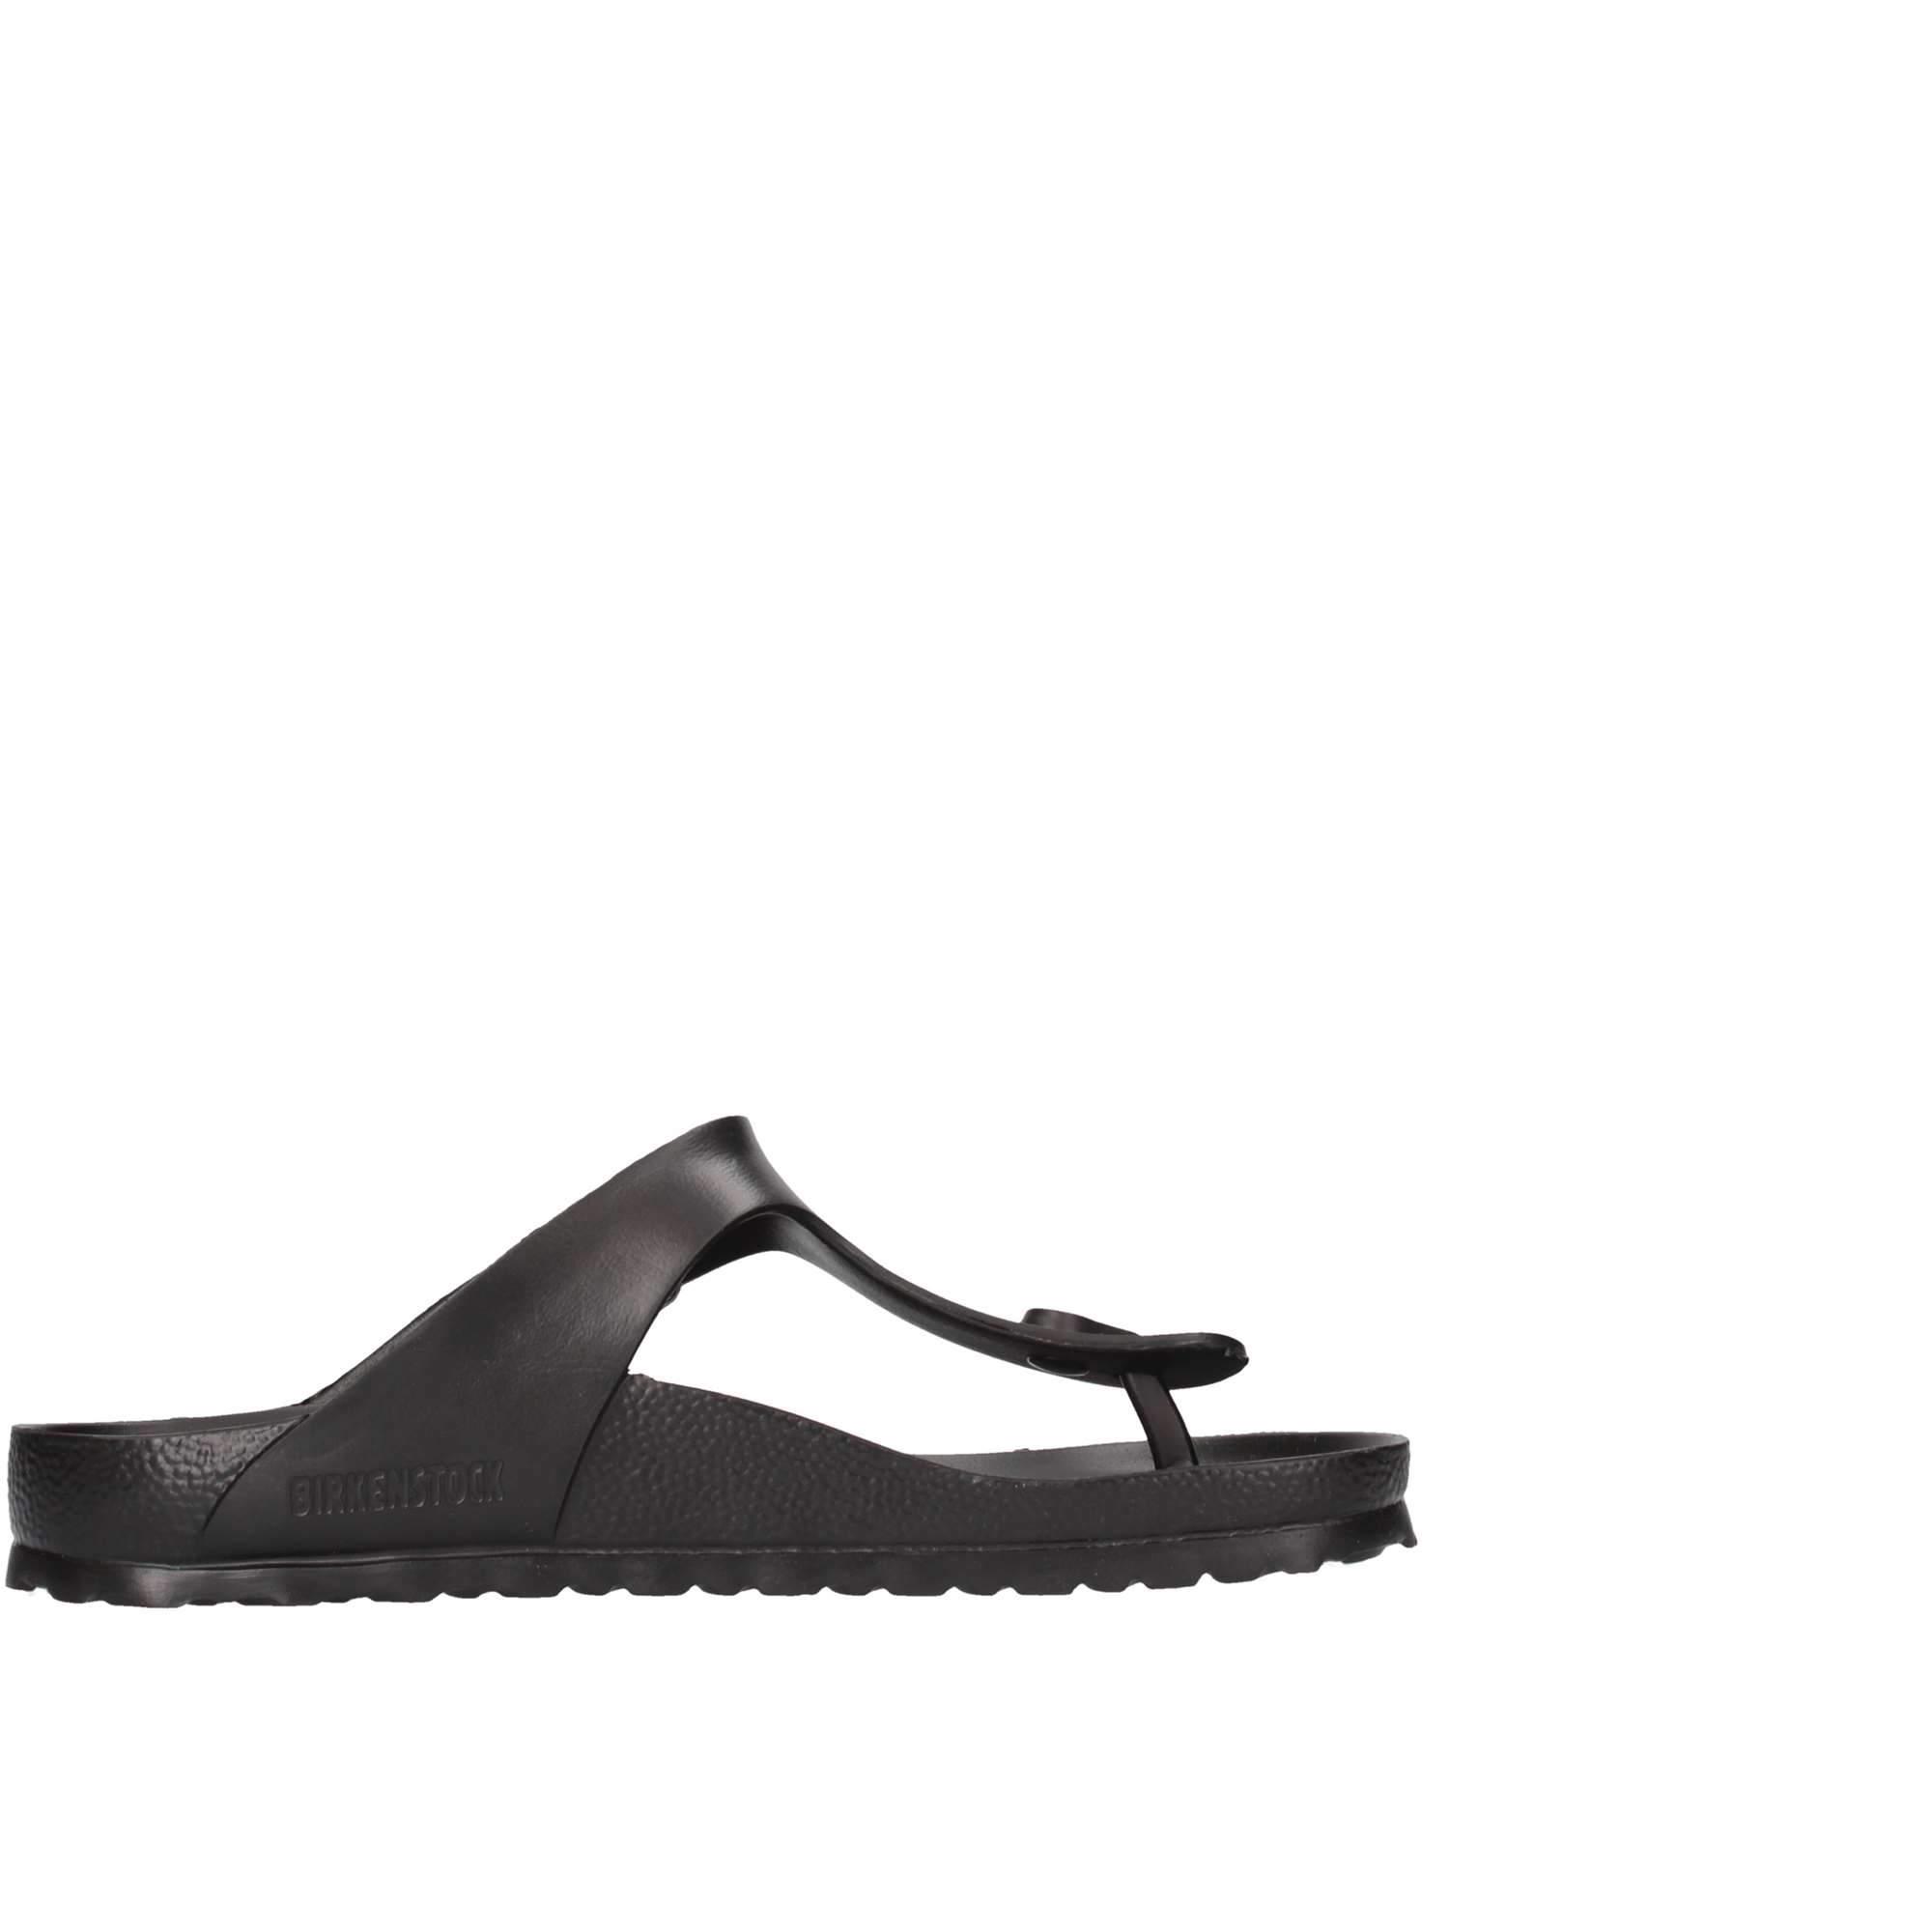 Birkenstock 128201 GIZEH EVA UOM Black Shoes Man